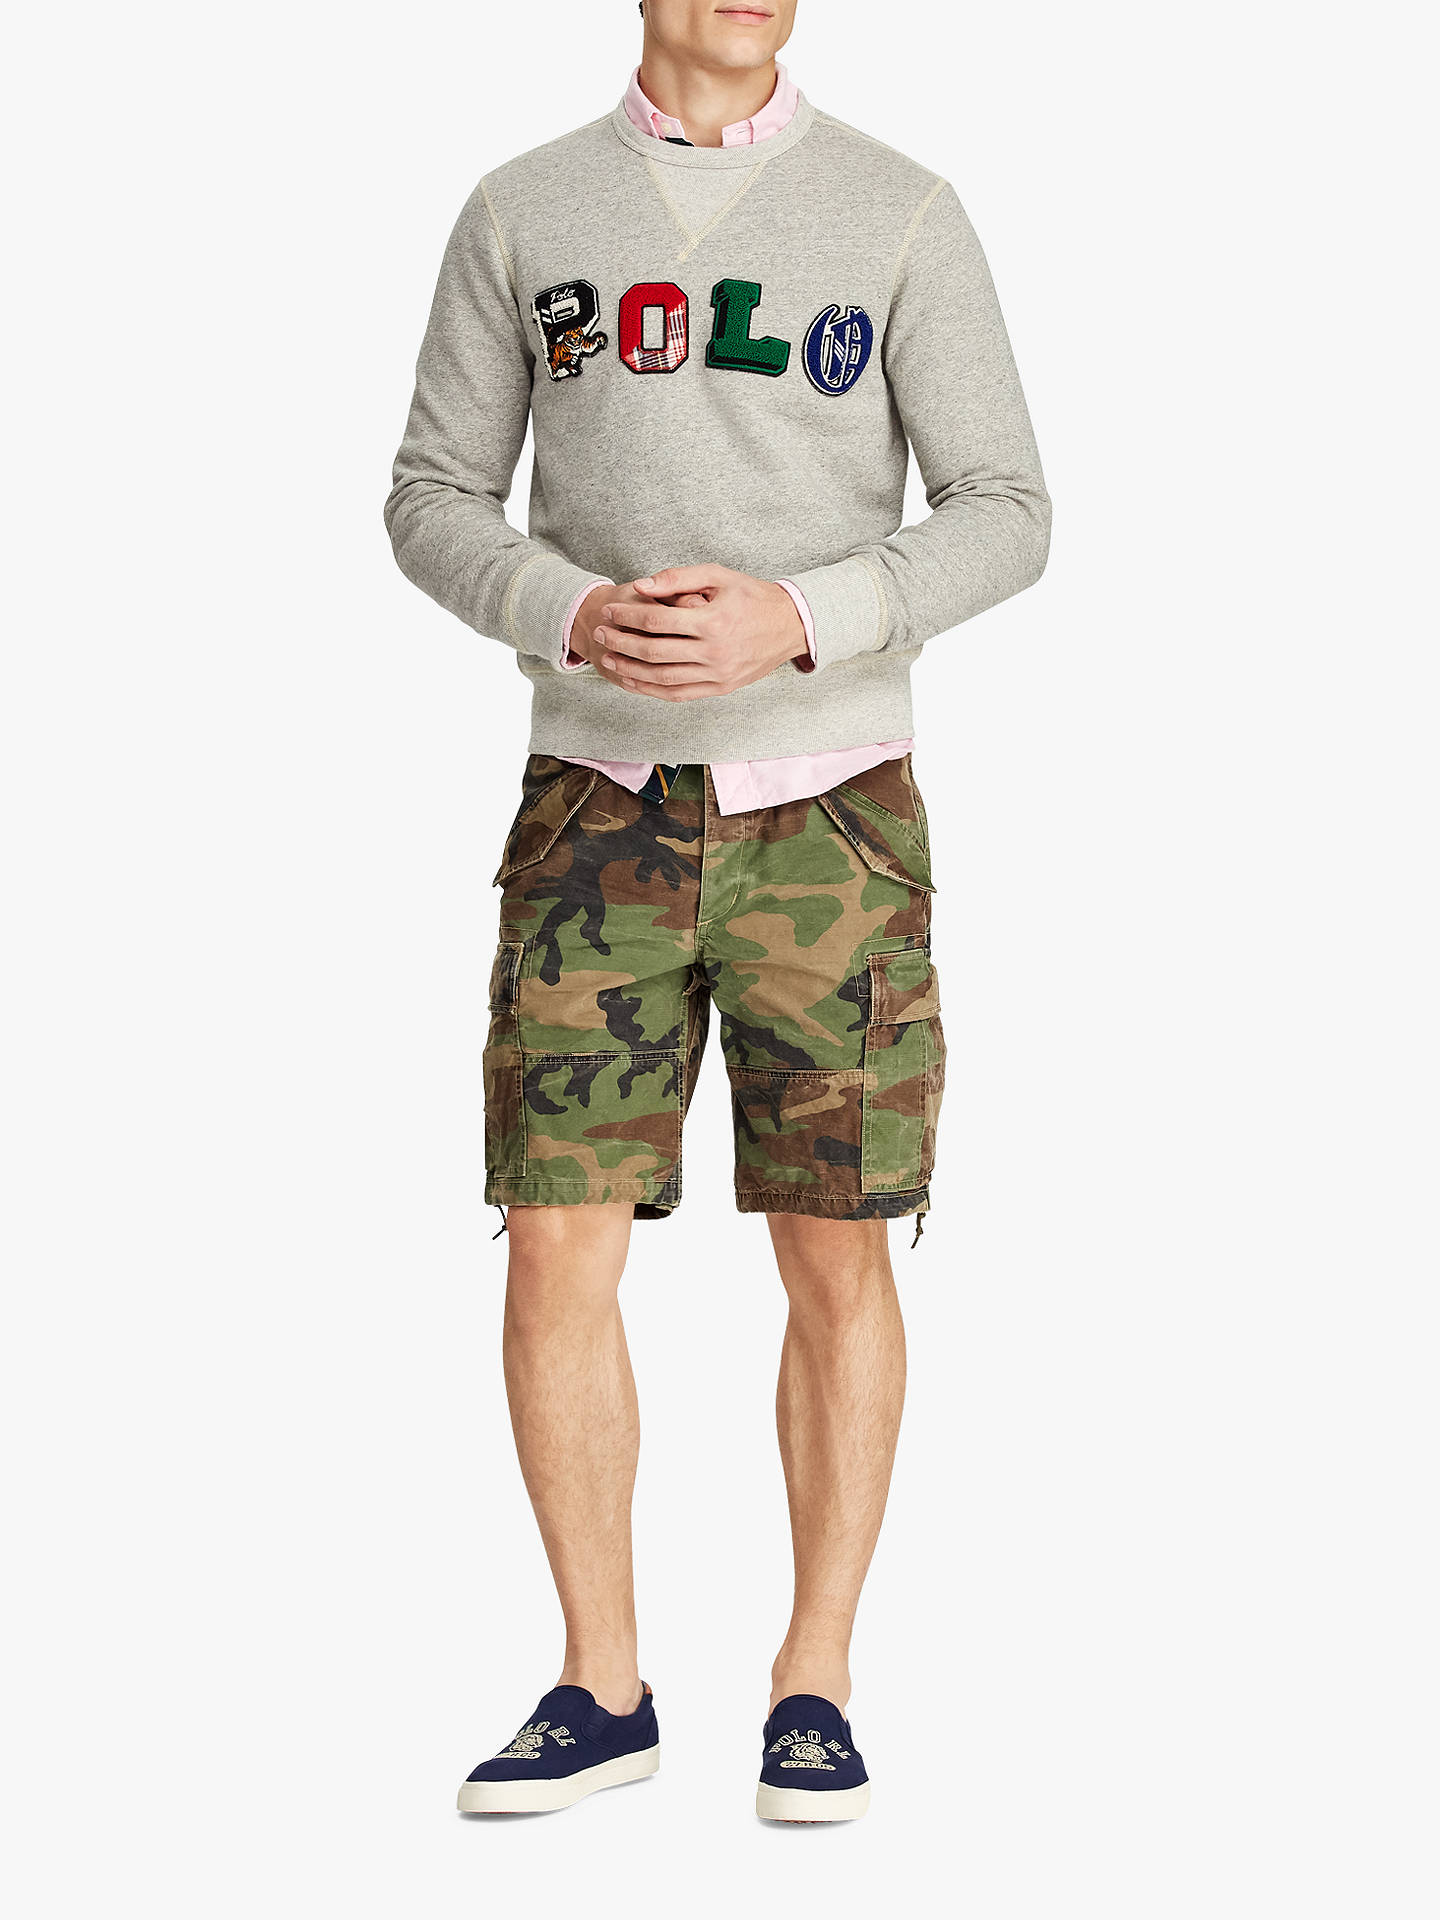 Buy Polo Ralph Lauren Polo Graphic Fleece Sweatshirt, Loft Heather, M Online at johnlewis.com